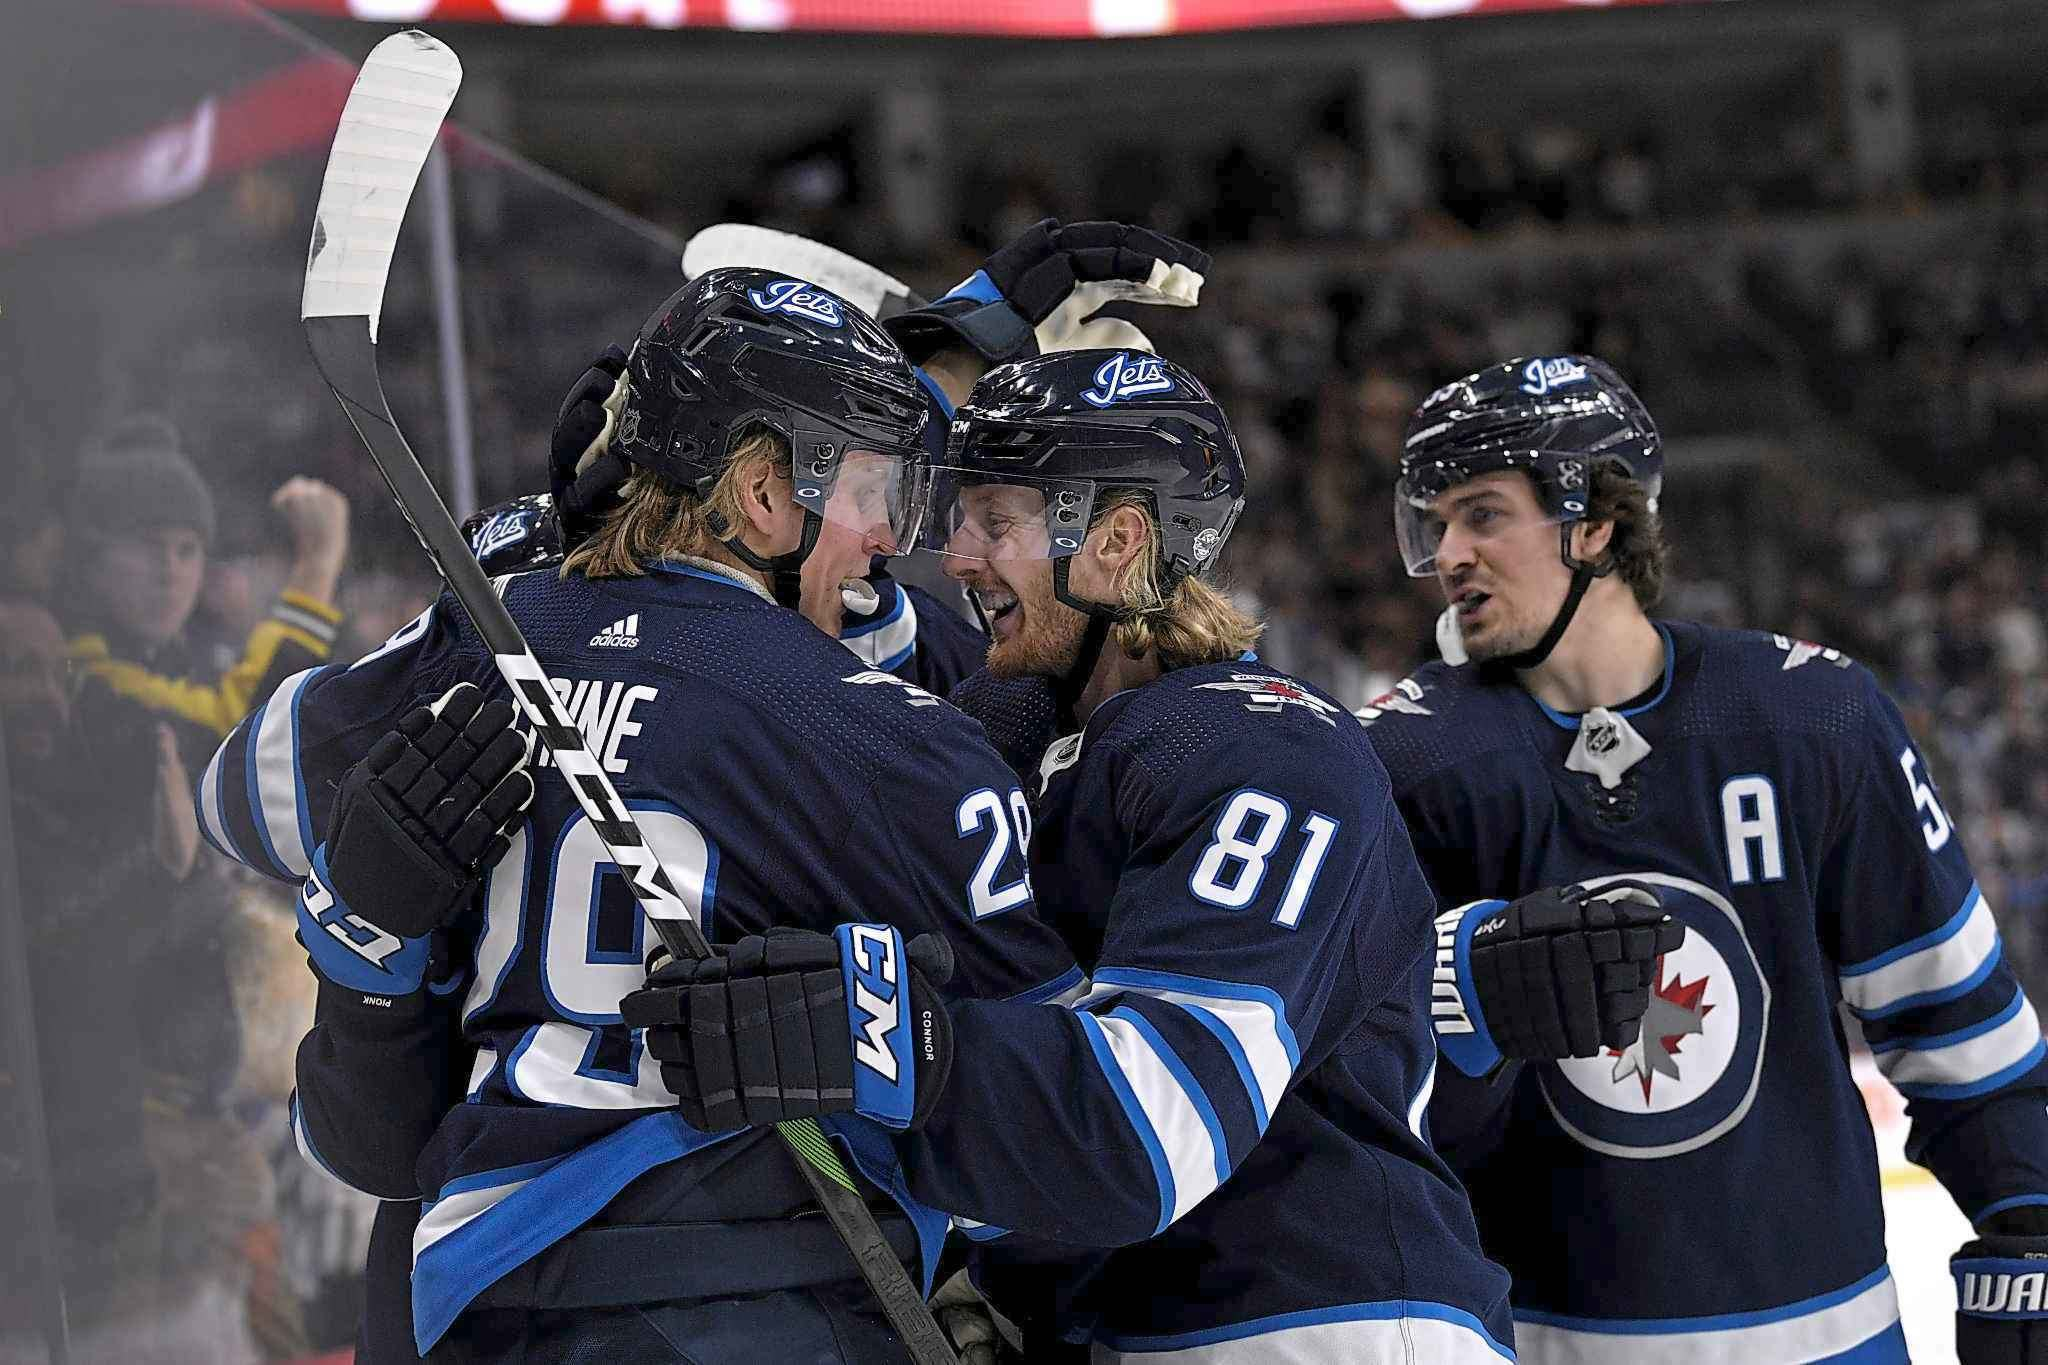 Laine celebrates his goal with his linemates. (Fred Greenslade / Canadian Press files)